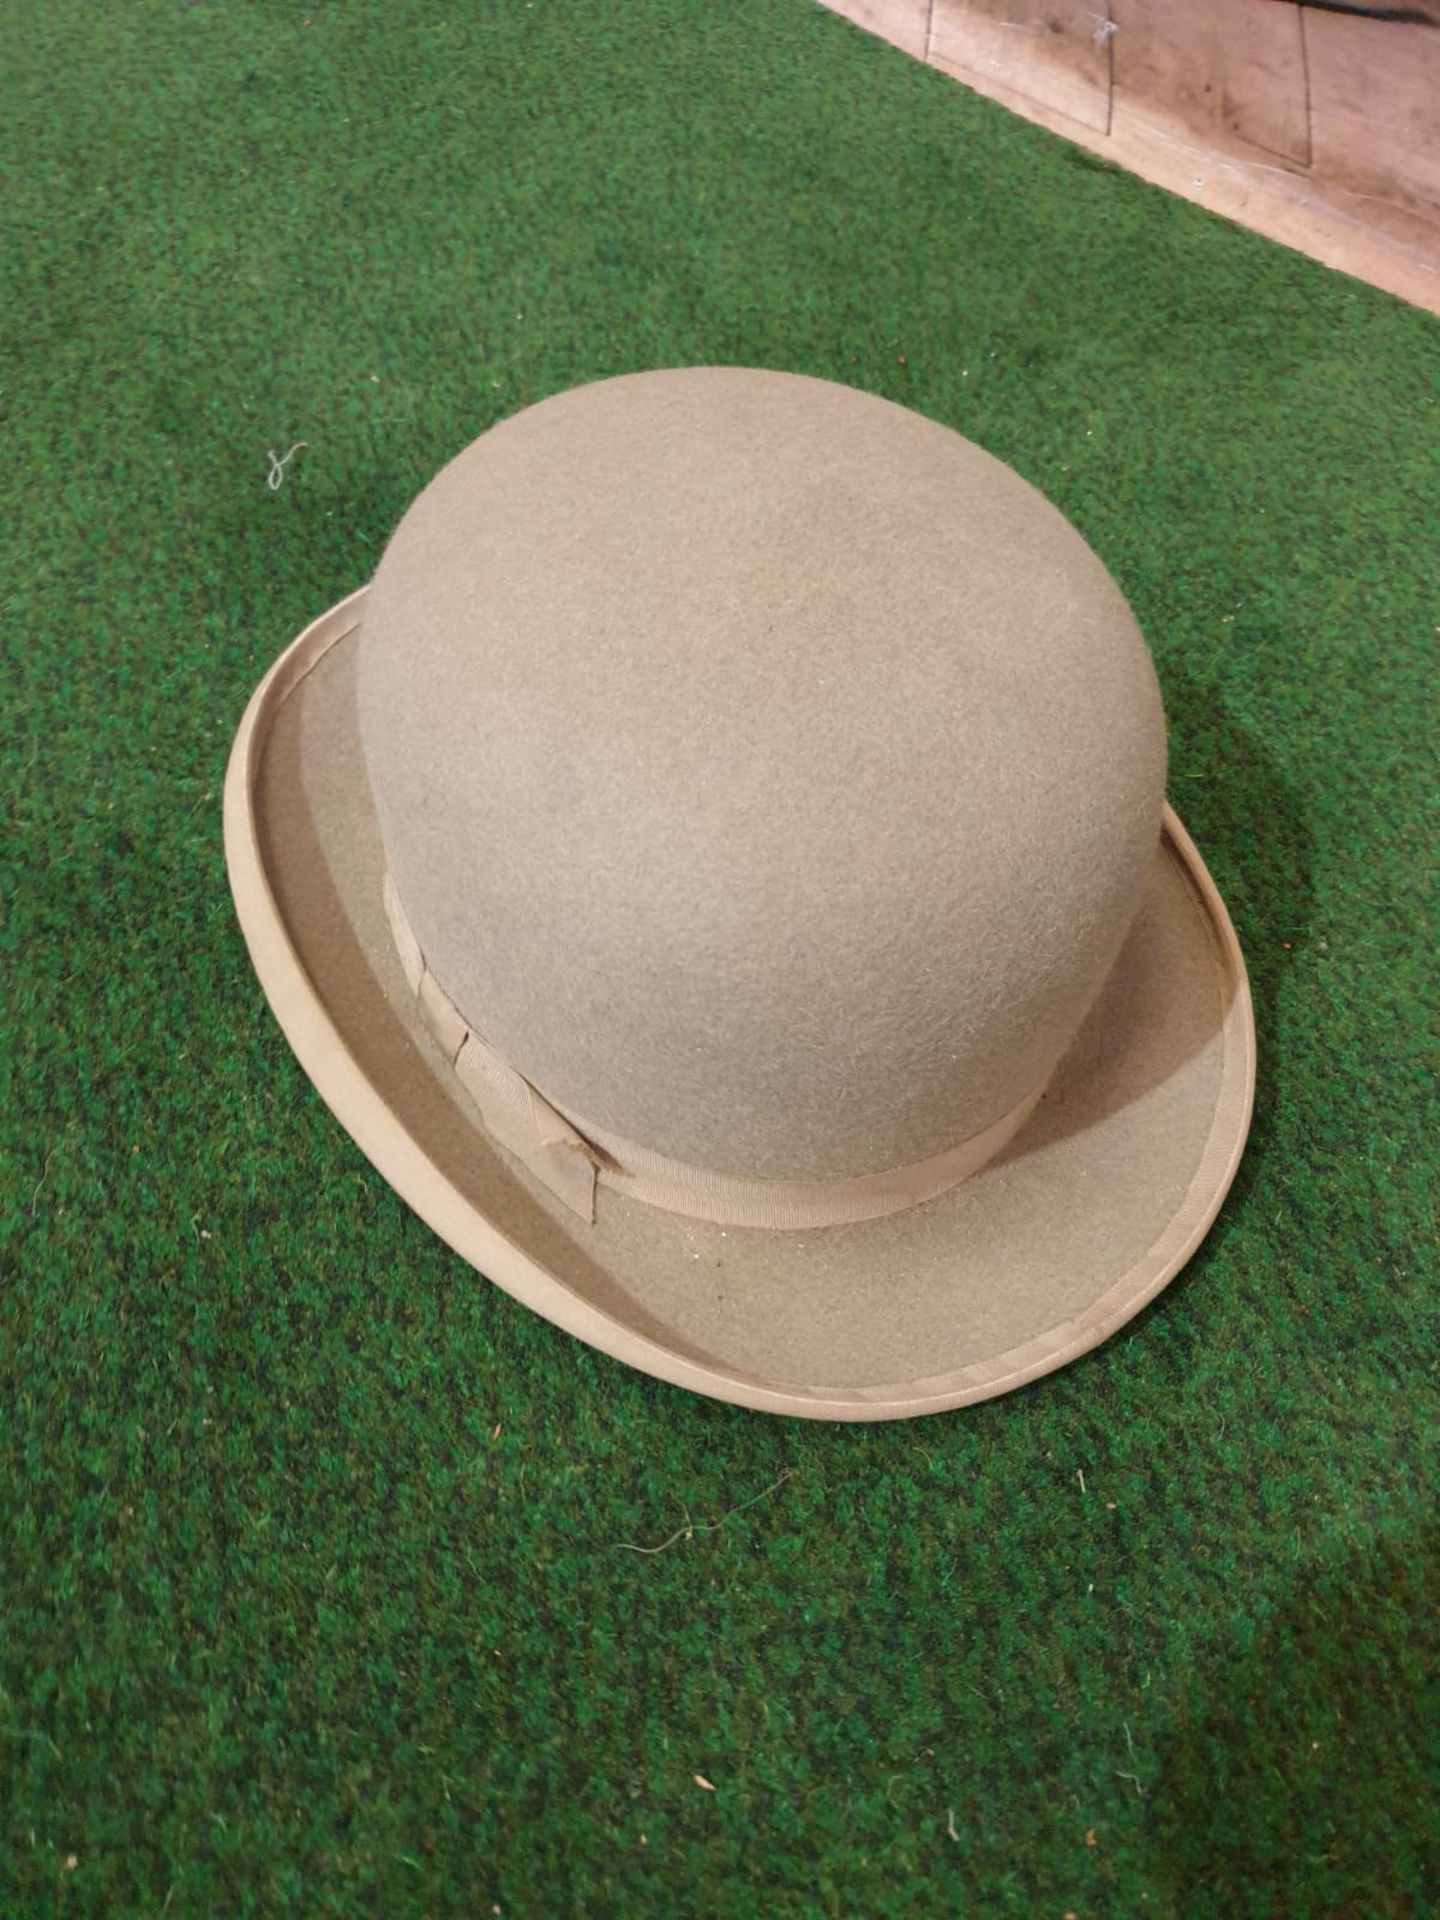 A grey bowler hat by Lock & Co London in Harmans card box - Image 2 of 5